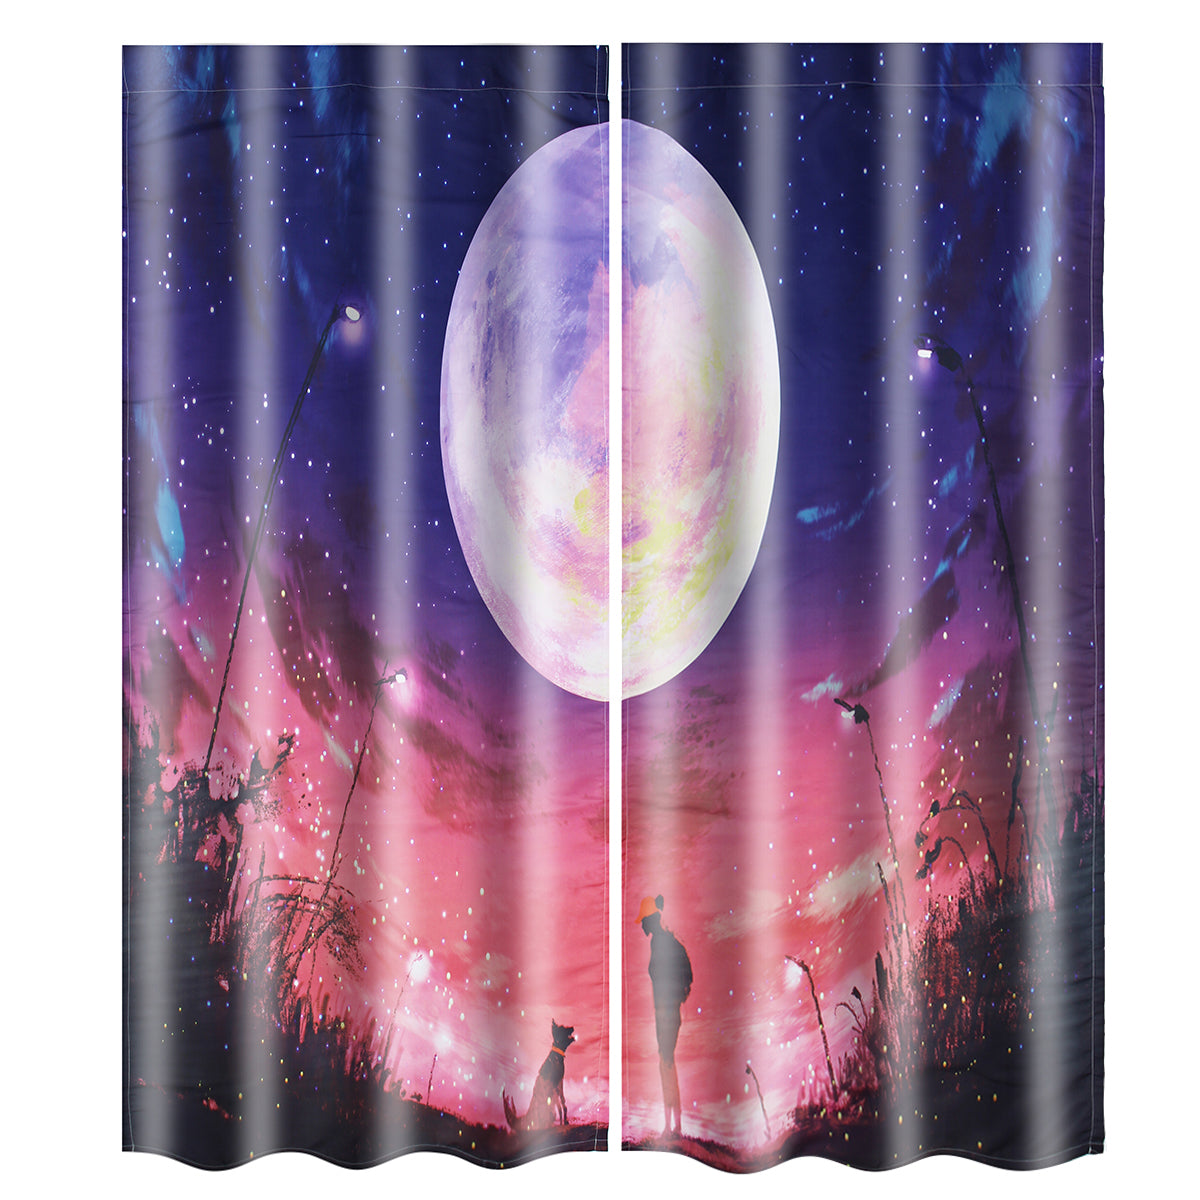 2 Panel Blackout Blinds Thermal Insulated 3D Printed Galaxy Window Curtains Screens